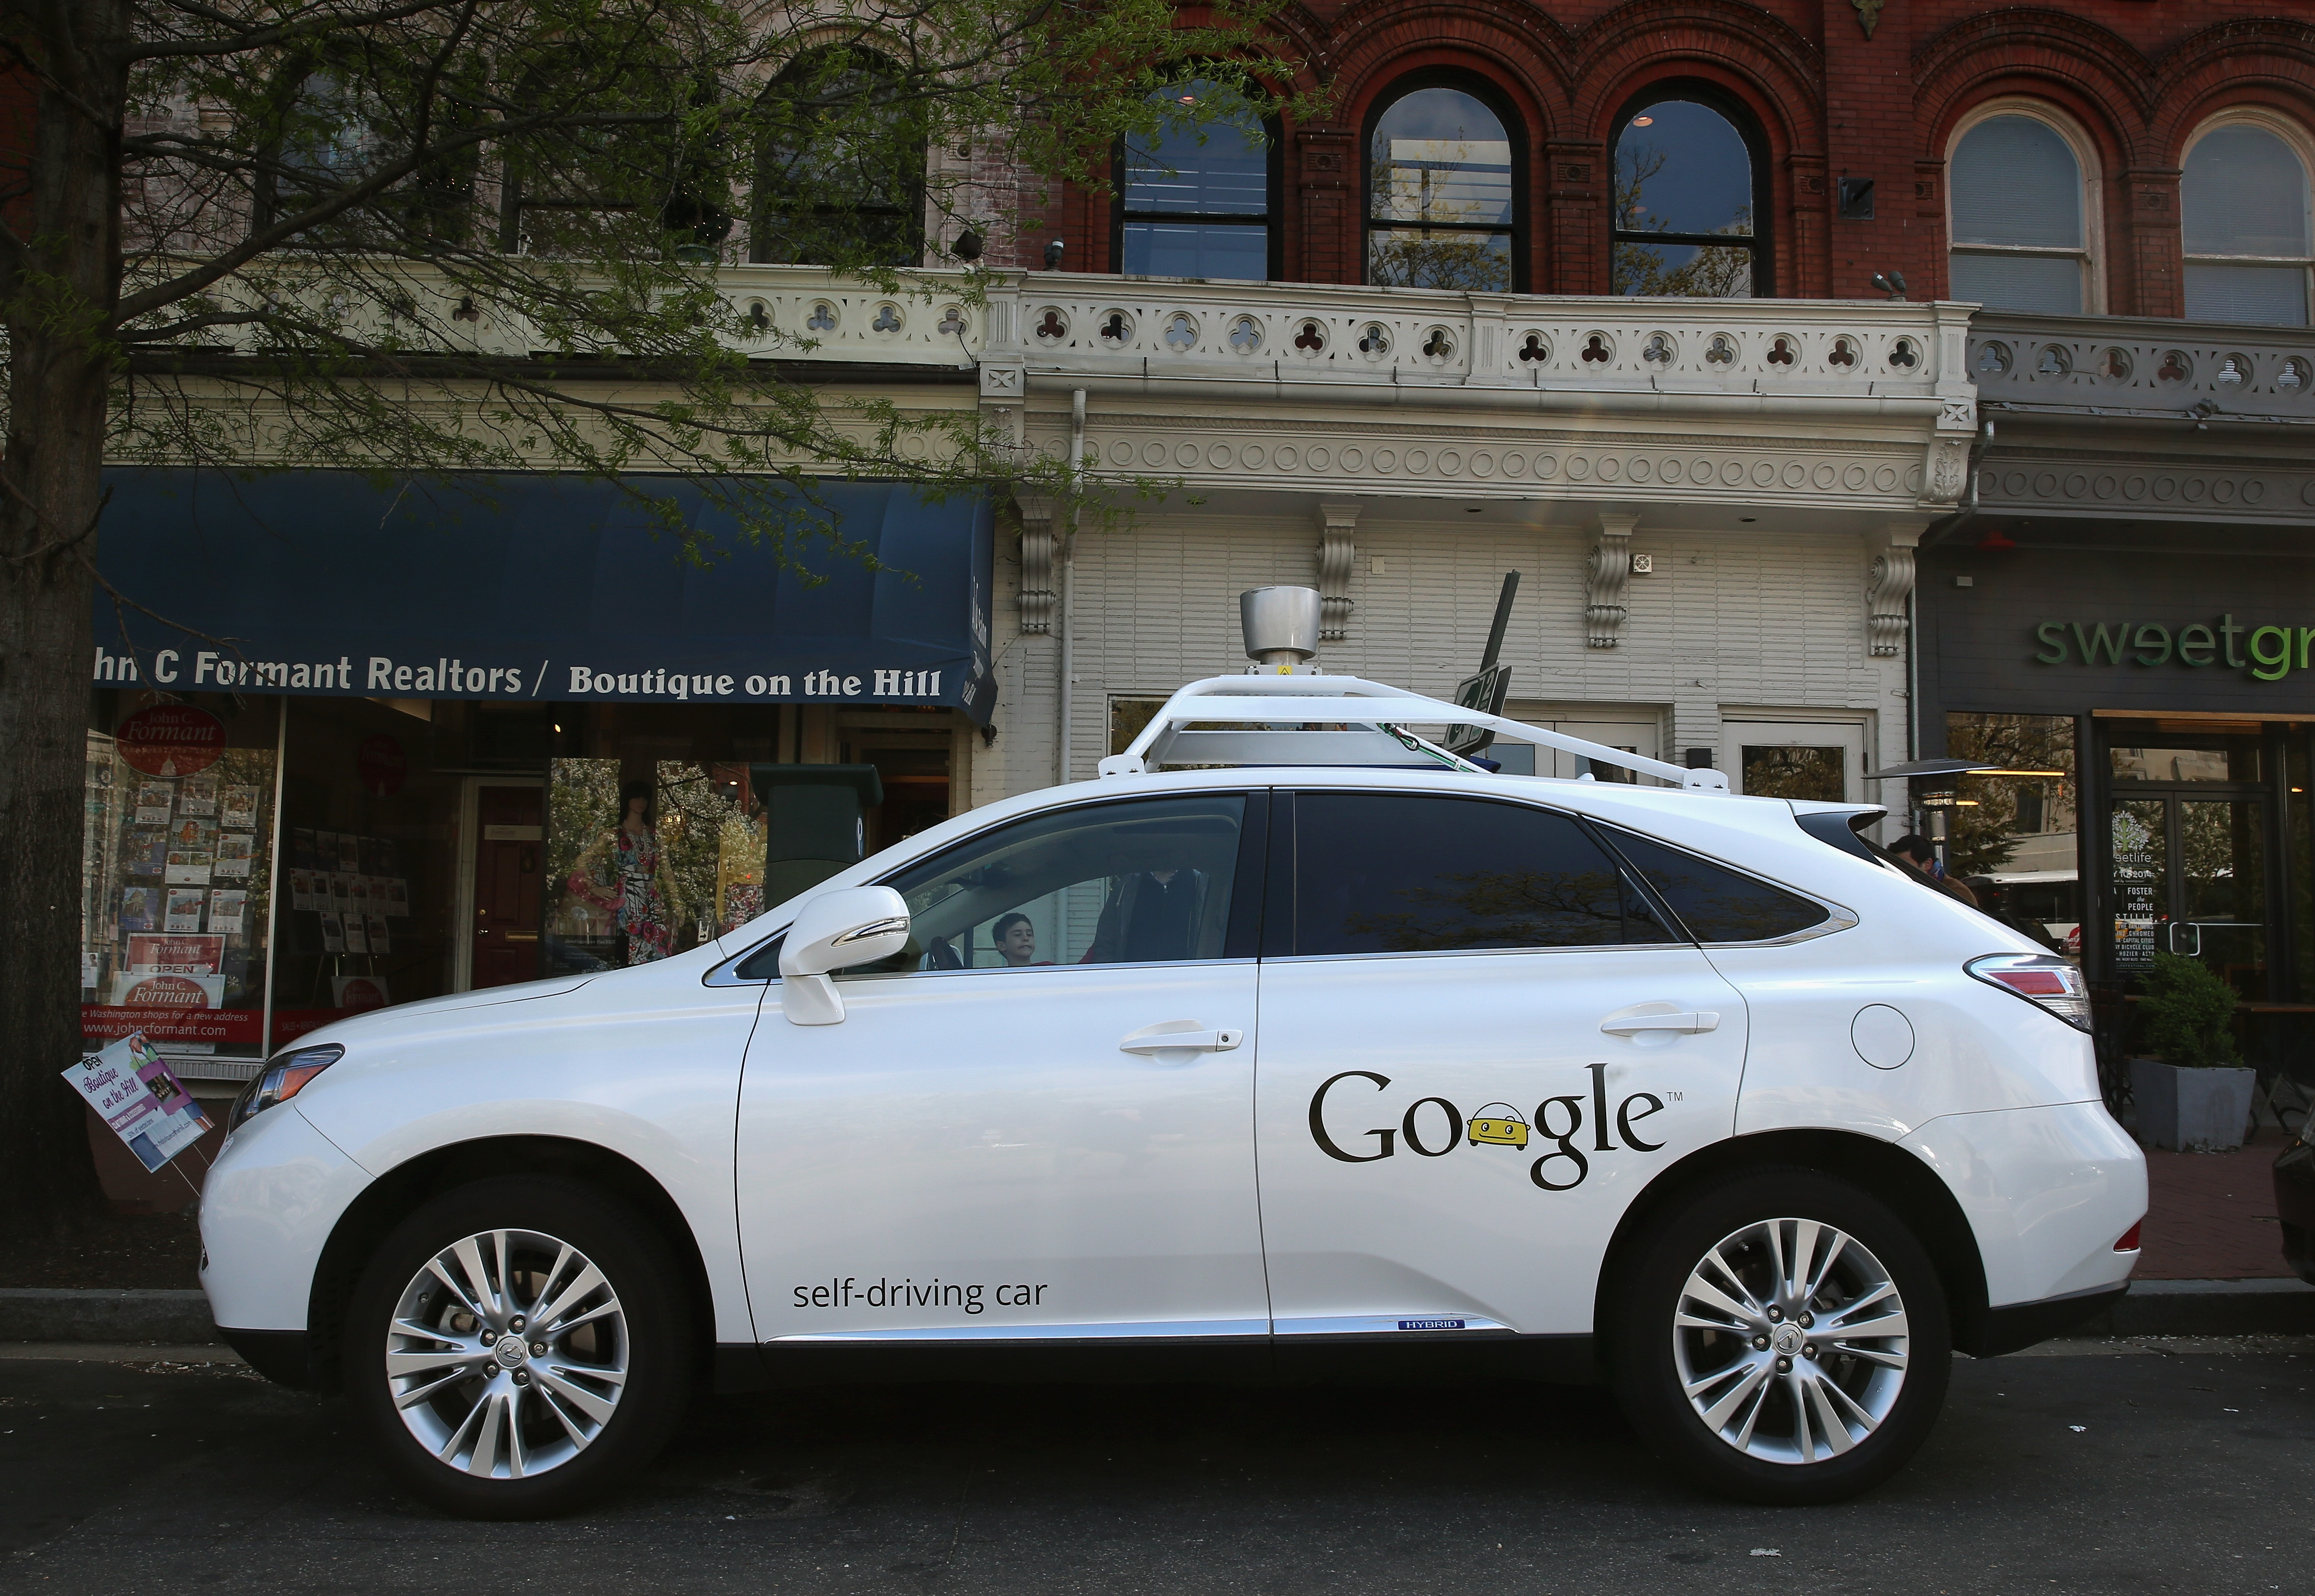 Google's Lexus RX 450H Self Driving Car is seen parked on Pennsylvania Ave. on April 23, 2014 in Washington, D.C.